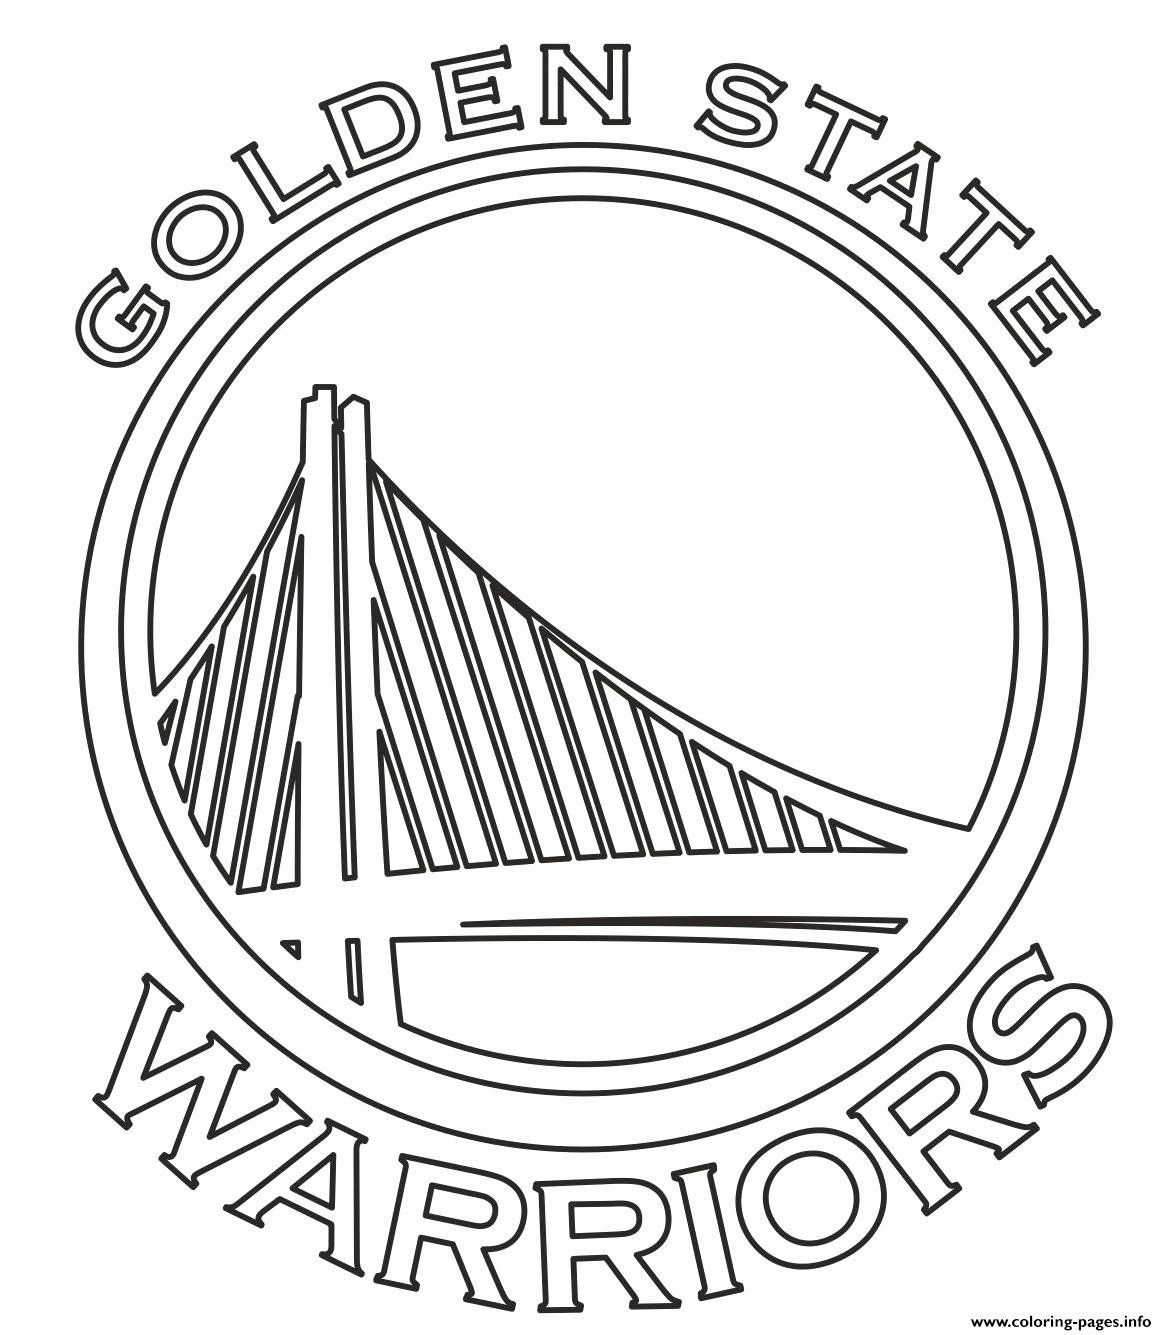 Golden State Warriors Coloring Page Best Of Nba Teams Logo Golden State War In 2020 Golden State Warriors Logo Golden State Warriors Colors Golden State Warriors Party